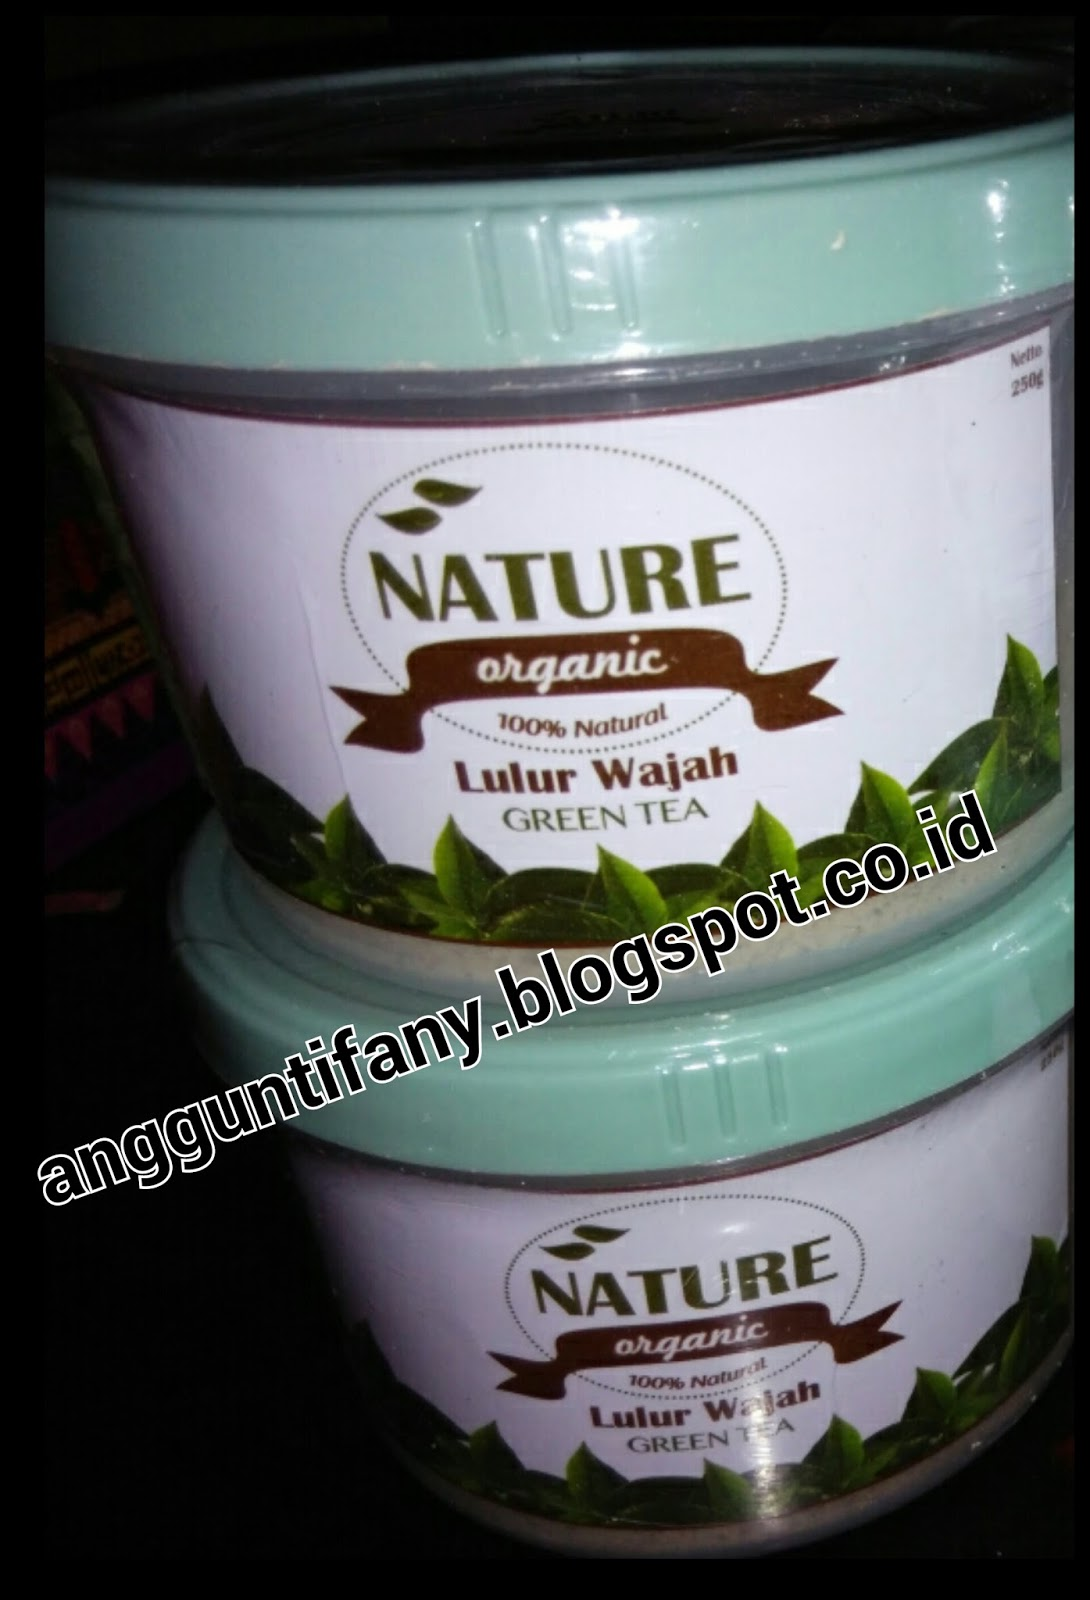 Review Lulur Wajah Nature Organic Green Tea Diary Anggun Tifany Natur E Cream